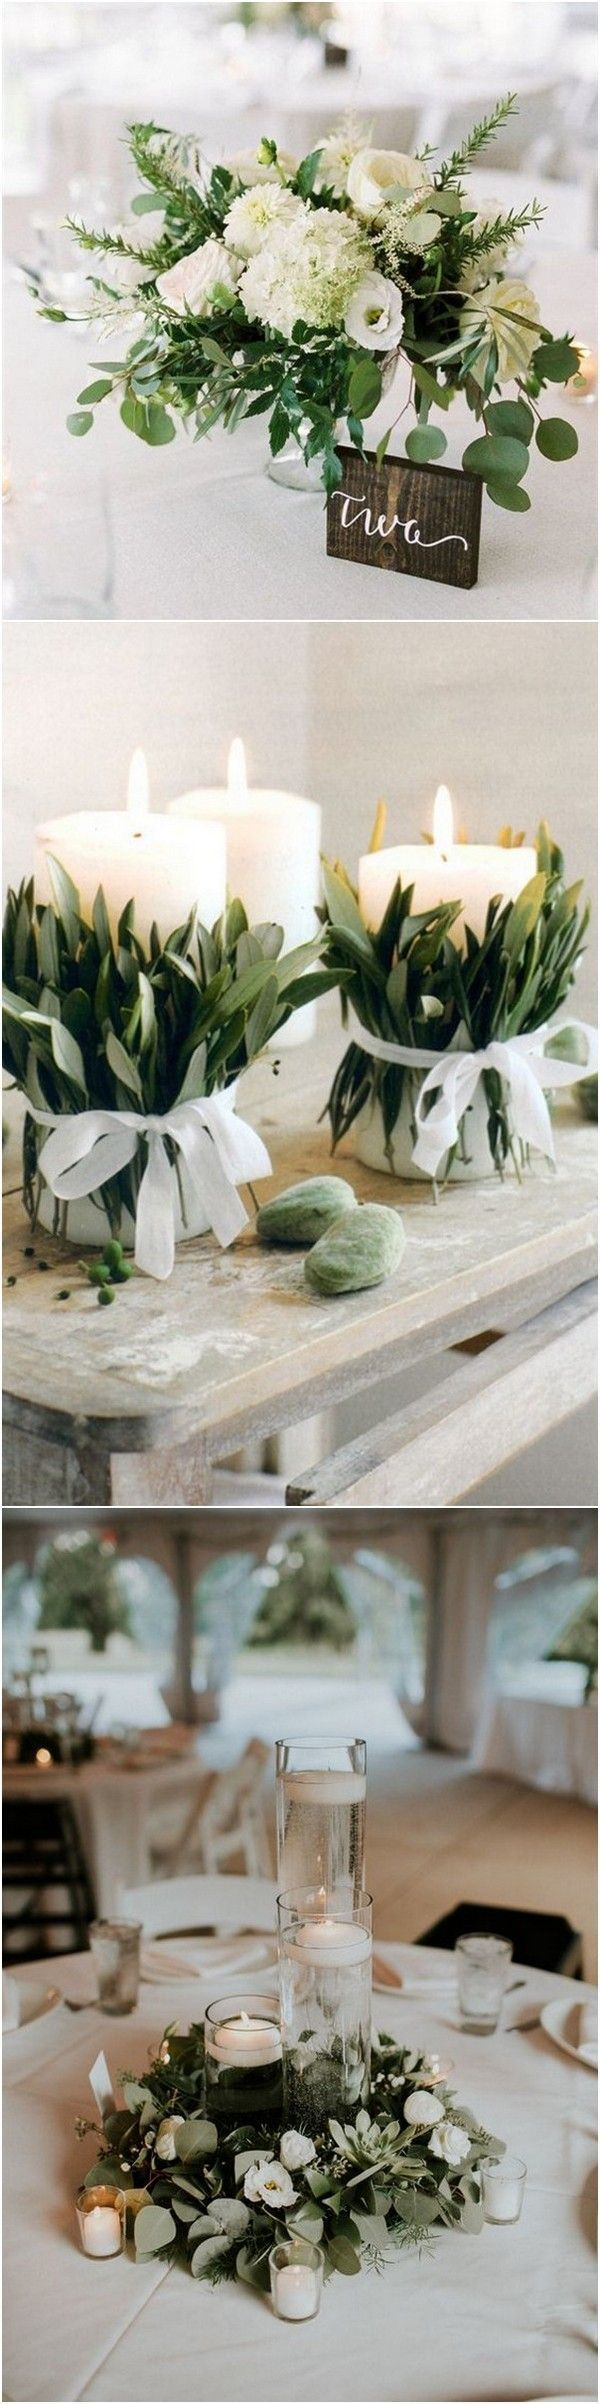 Wedding room decoration ideas 2018  Top  White and Greenery Wedding Centerpieces for   Wedding